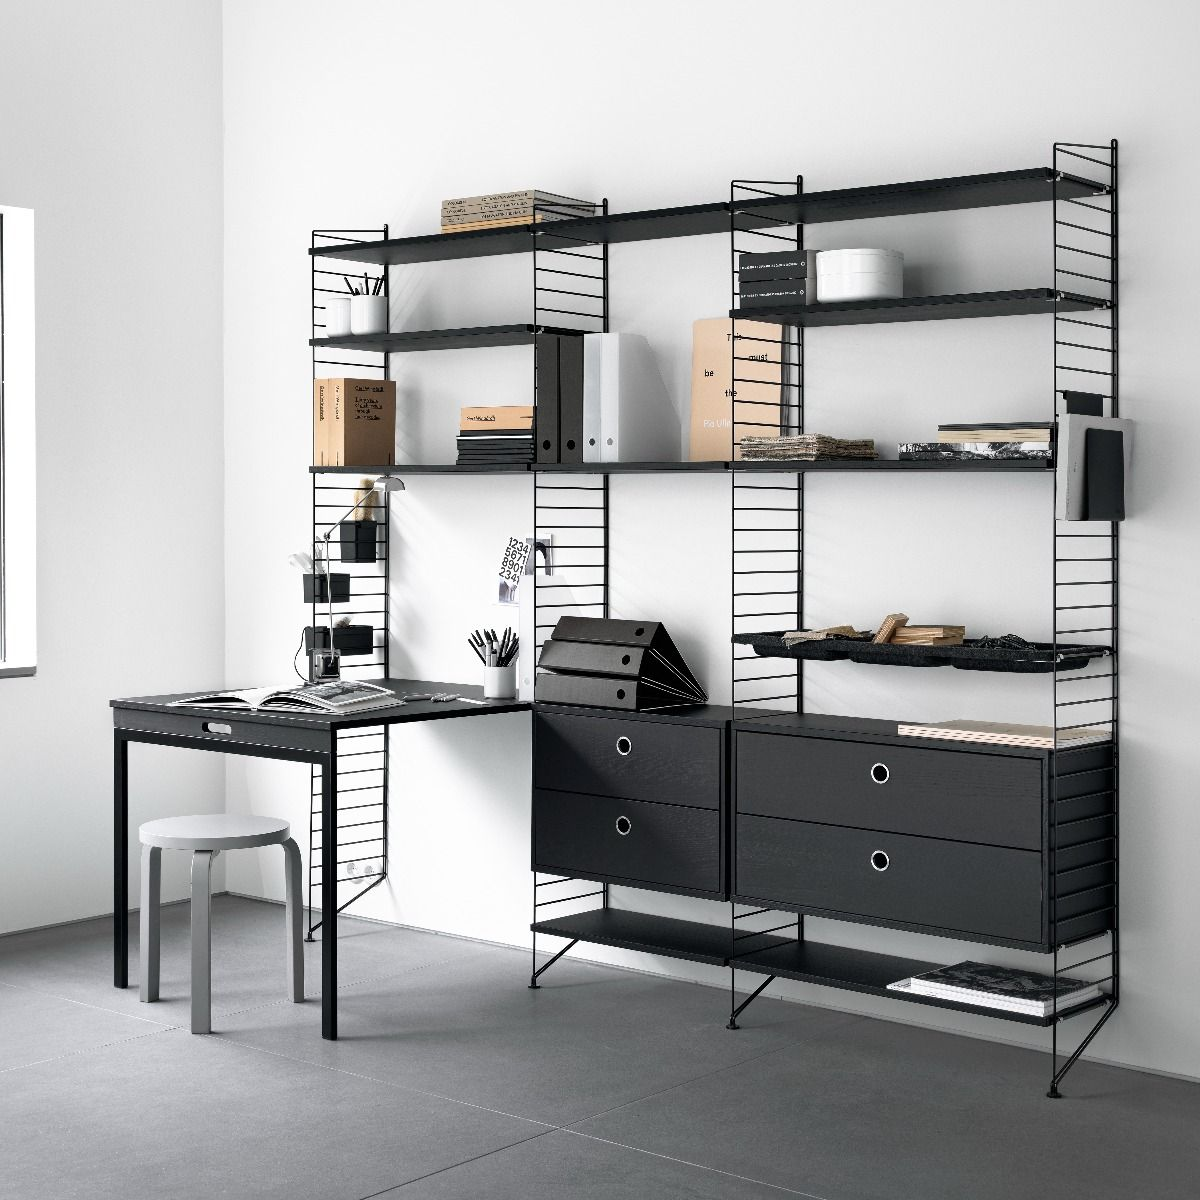 Black ash string shelving system including folding table and both 78 and 58cm drawers